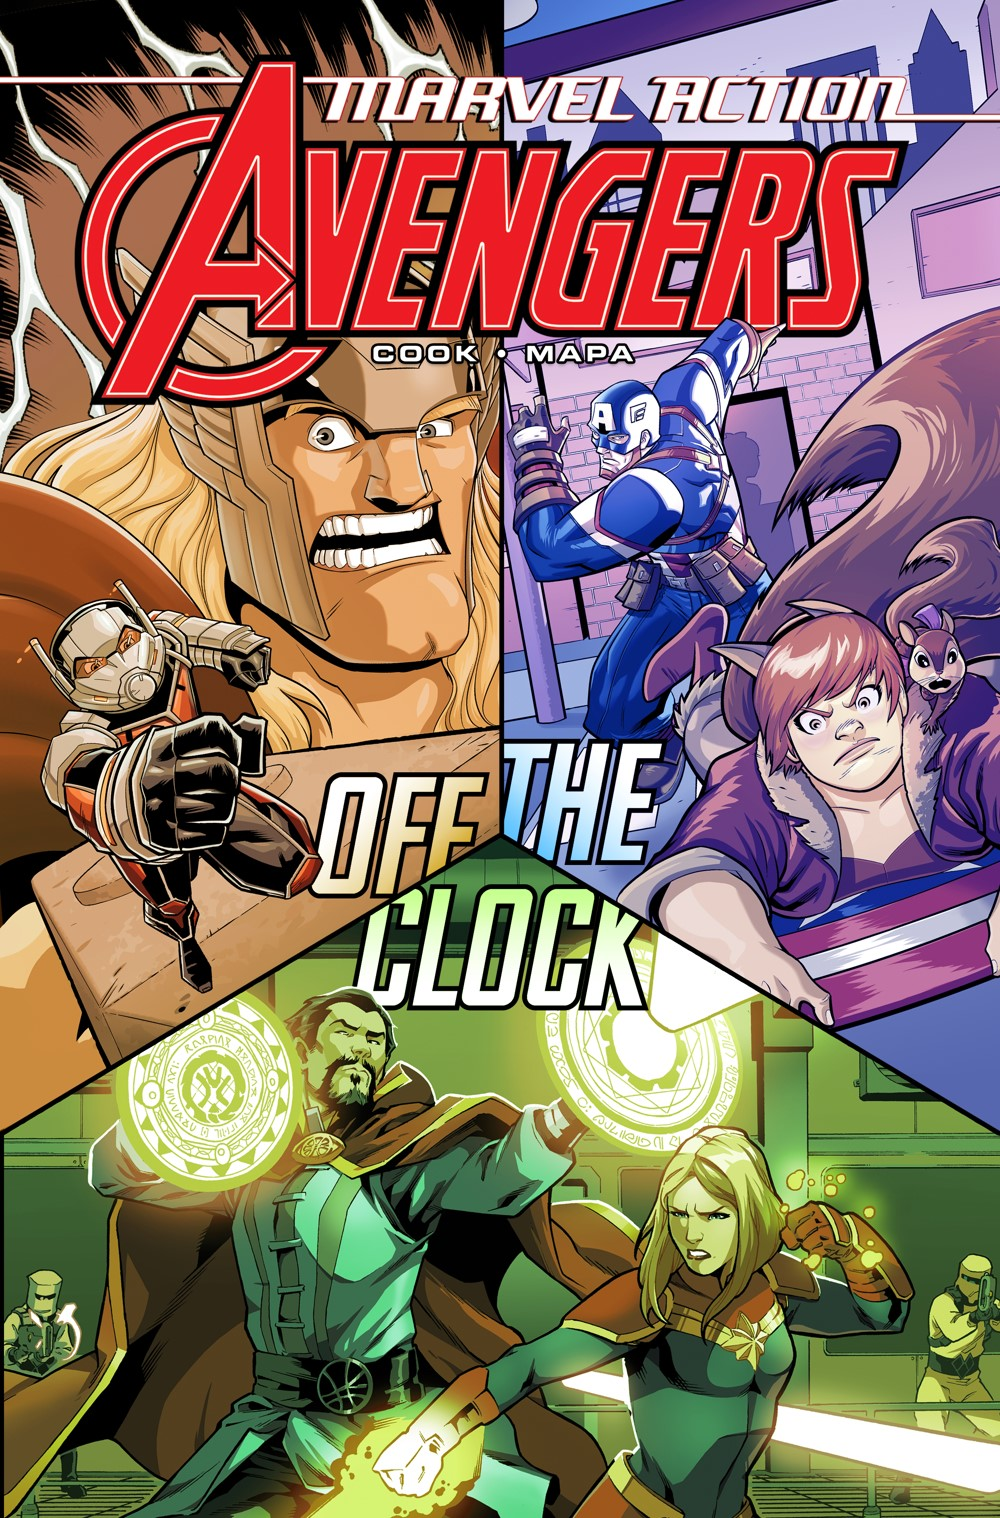 MA_Avengers_OTC_Cover1 ComicList Previews: MARVEL ACTION AVENGERS VOLUME 5 OFF THE CLOCK TP